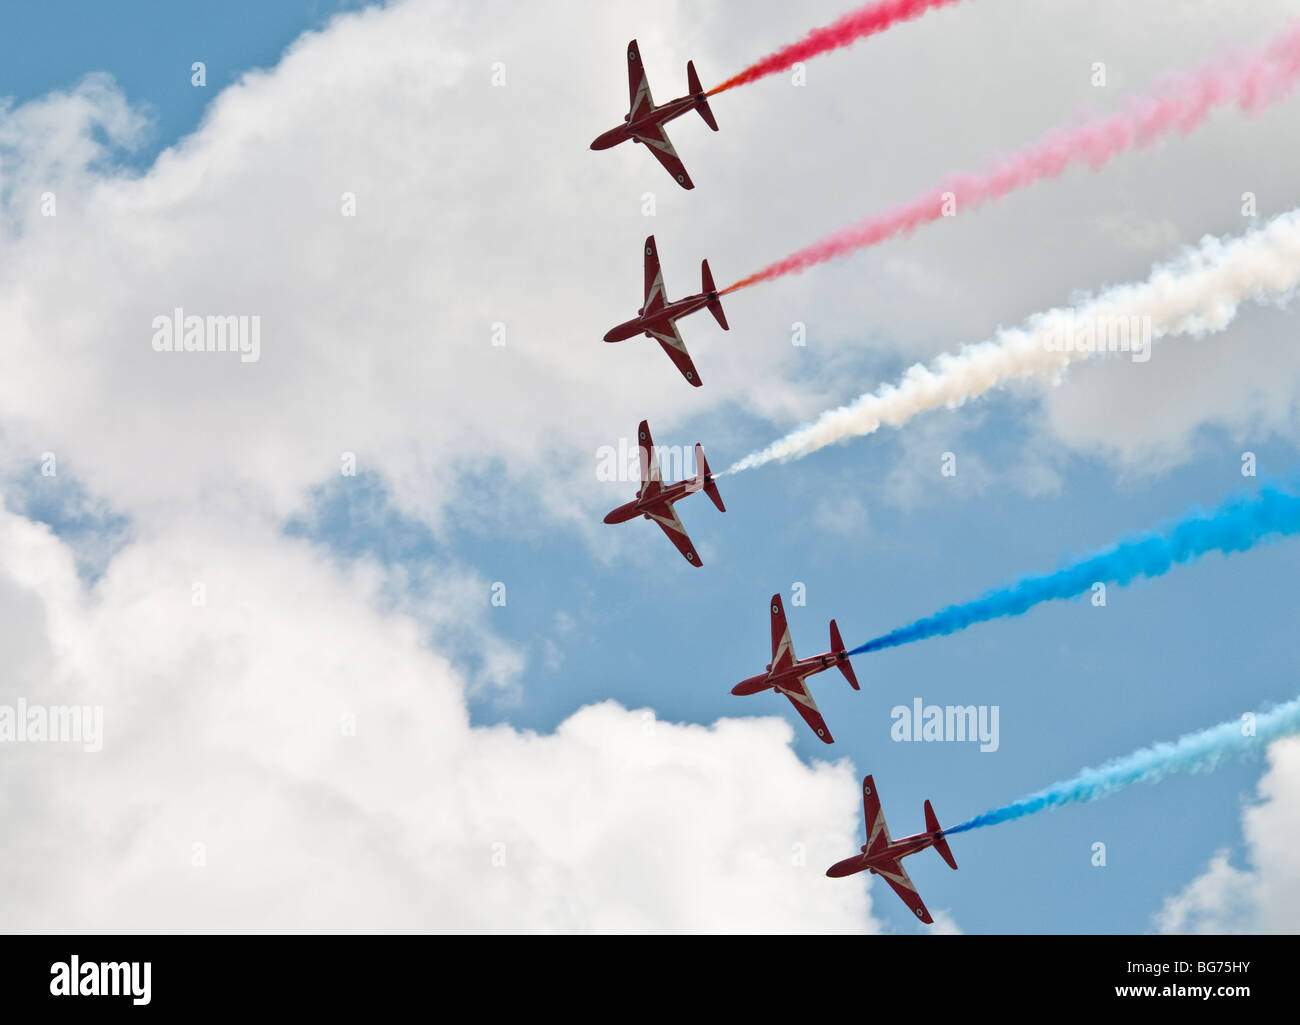 Five of the Red Arrows in formation during a flypast with coloured smoke trailing. - Stock Image